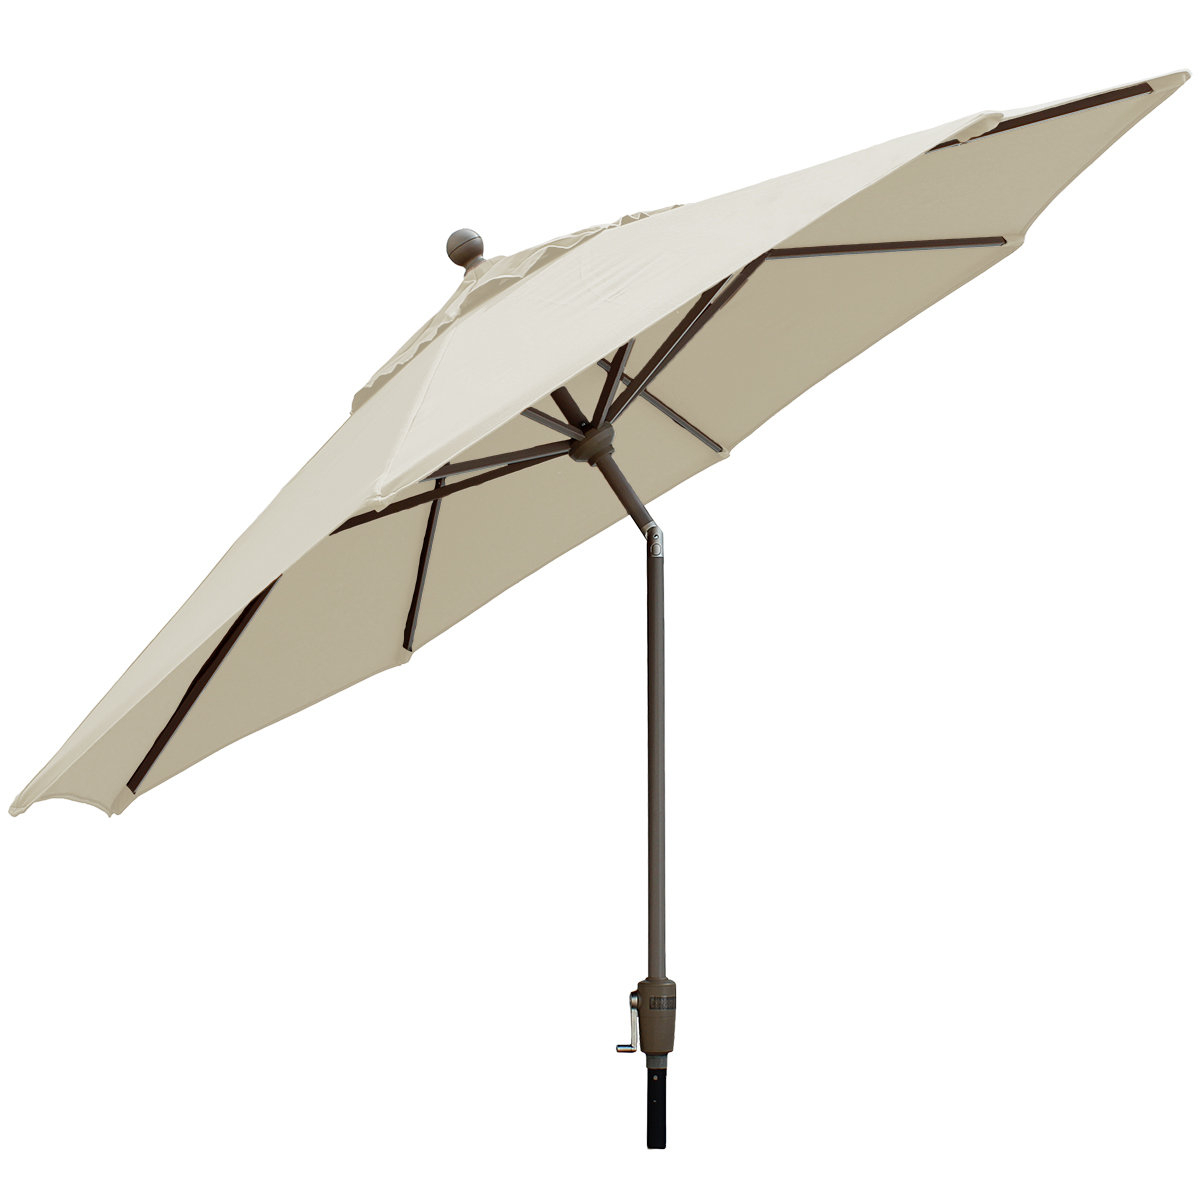 Crowland 9' Market Sunbrella Umbrella Intended For Most Recently Released Mucci Madilyn Market Sunbrella Umbrellas (View 1 of 20)